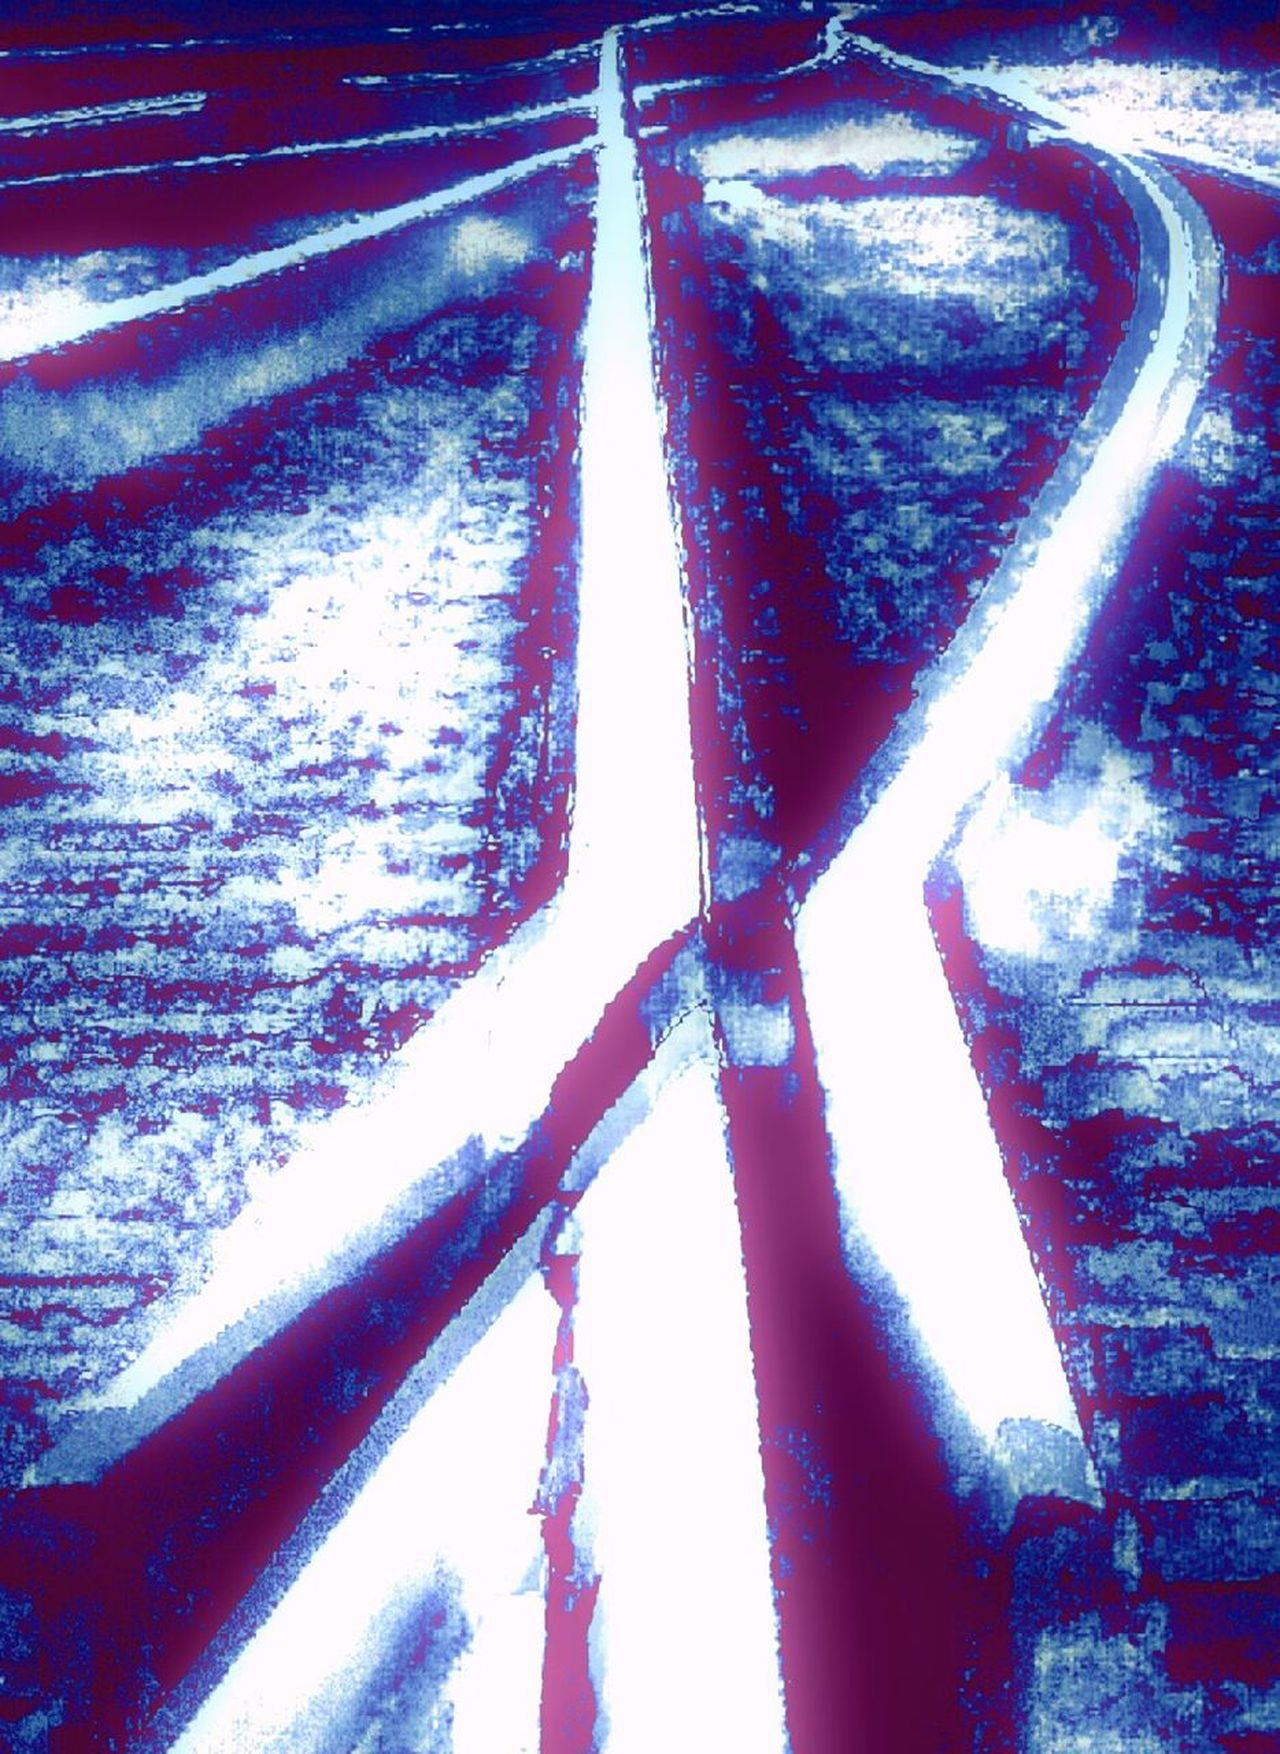 Railroad _collection Railroadphotography Railroad Track Railroad Photography Steel Traintracks Doubleexposure Double Exposure Tracks Thetrainspotting Reversed Image Reversed Perspective Flipped Image Flippedover Flippedit